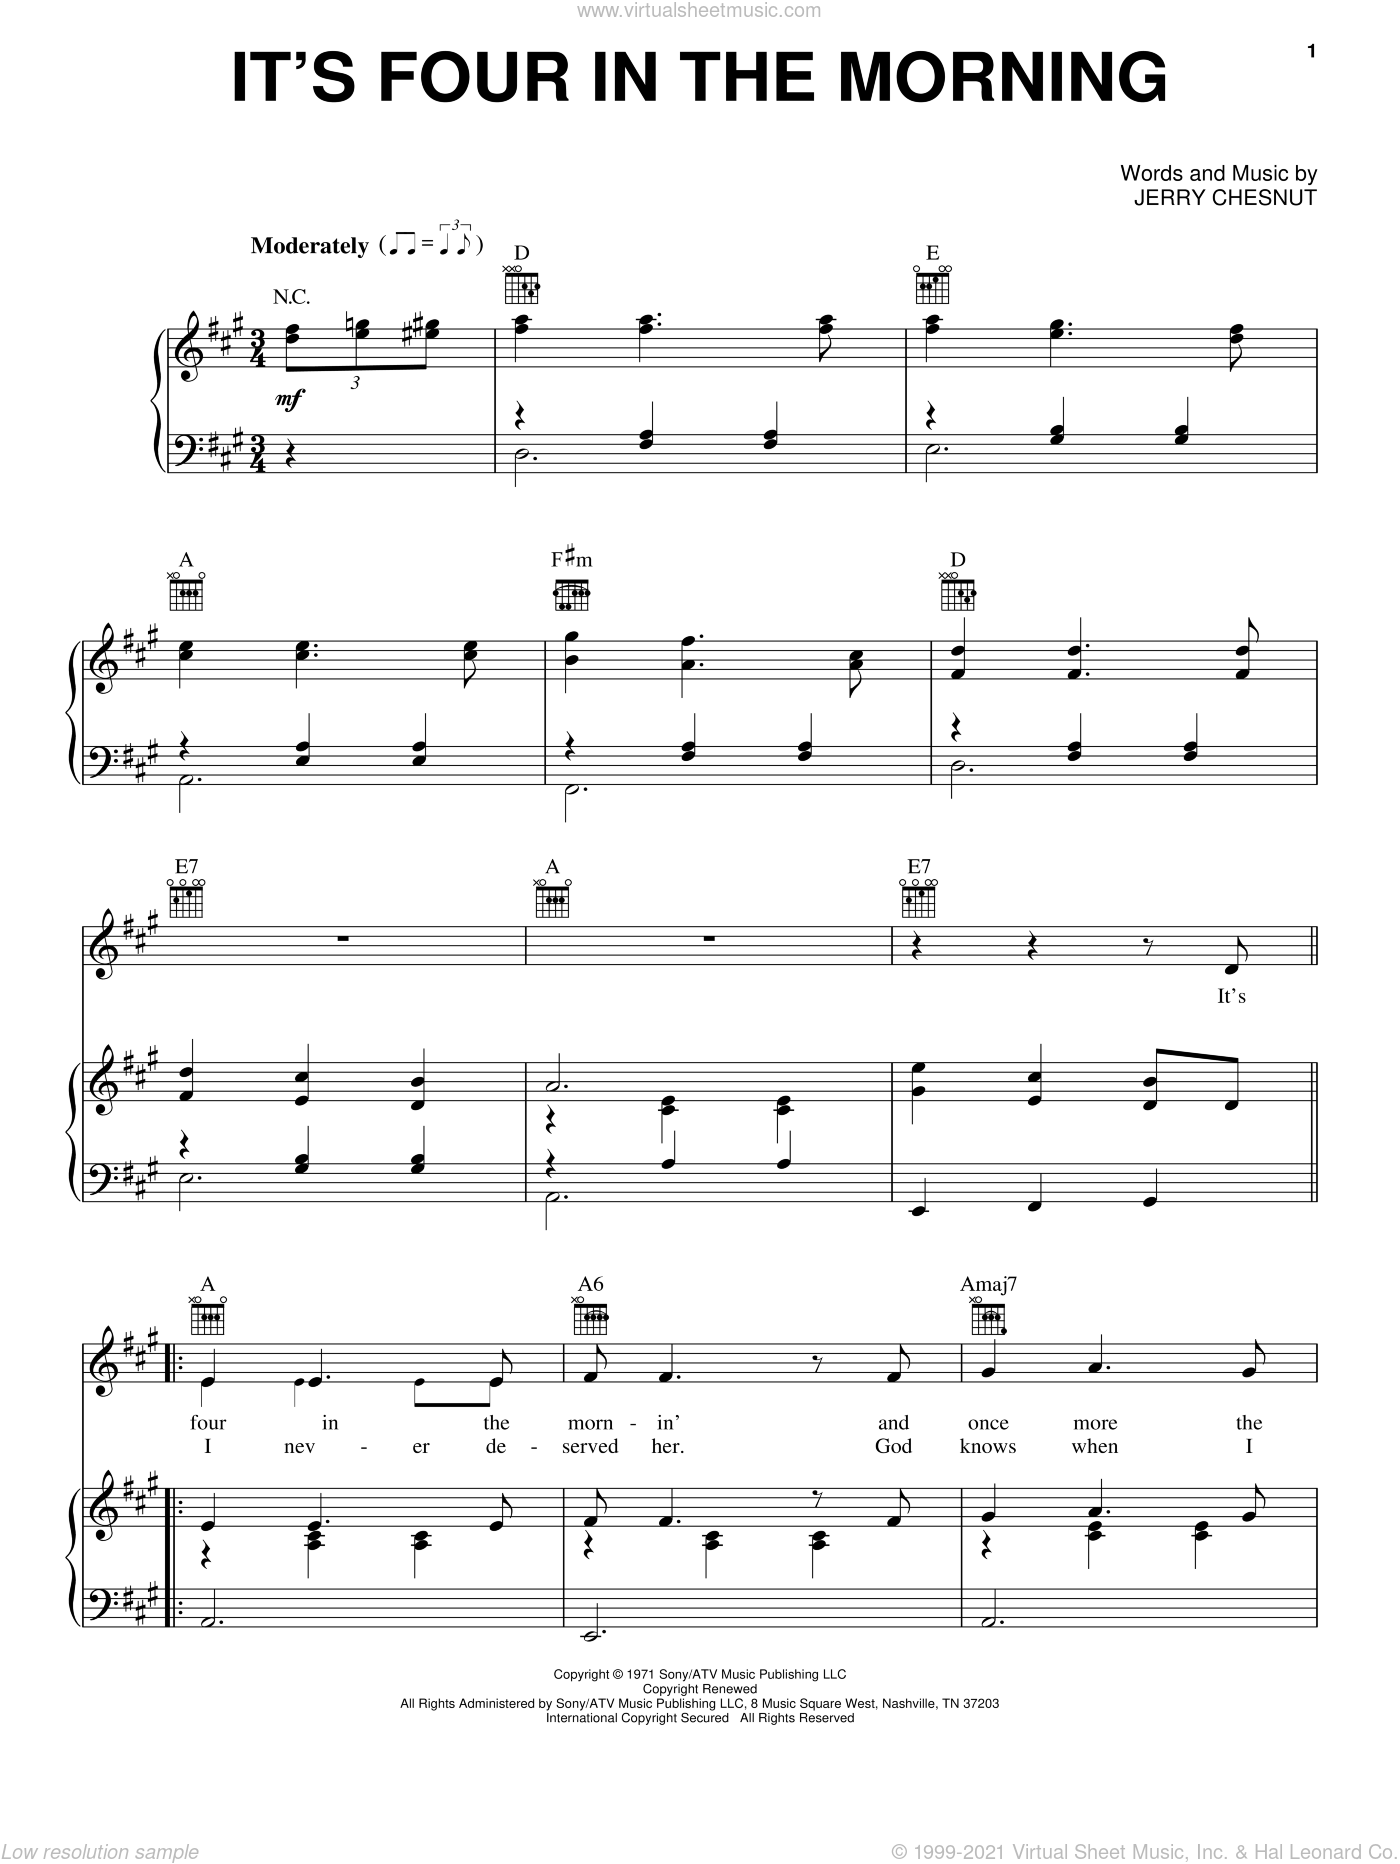 It's Four In The Morning sheet music for voice, piano or guitar by Jerry Chesnut